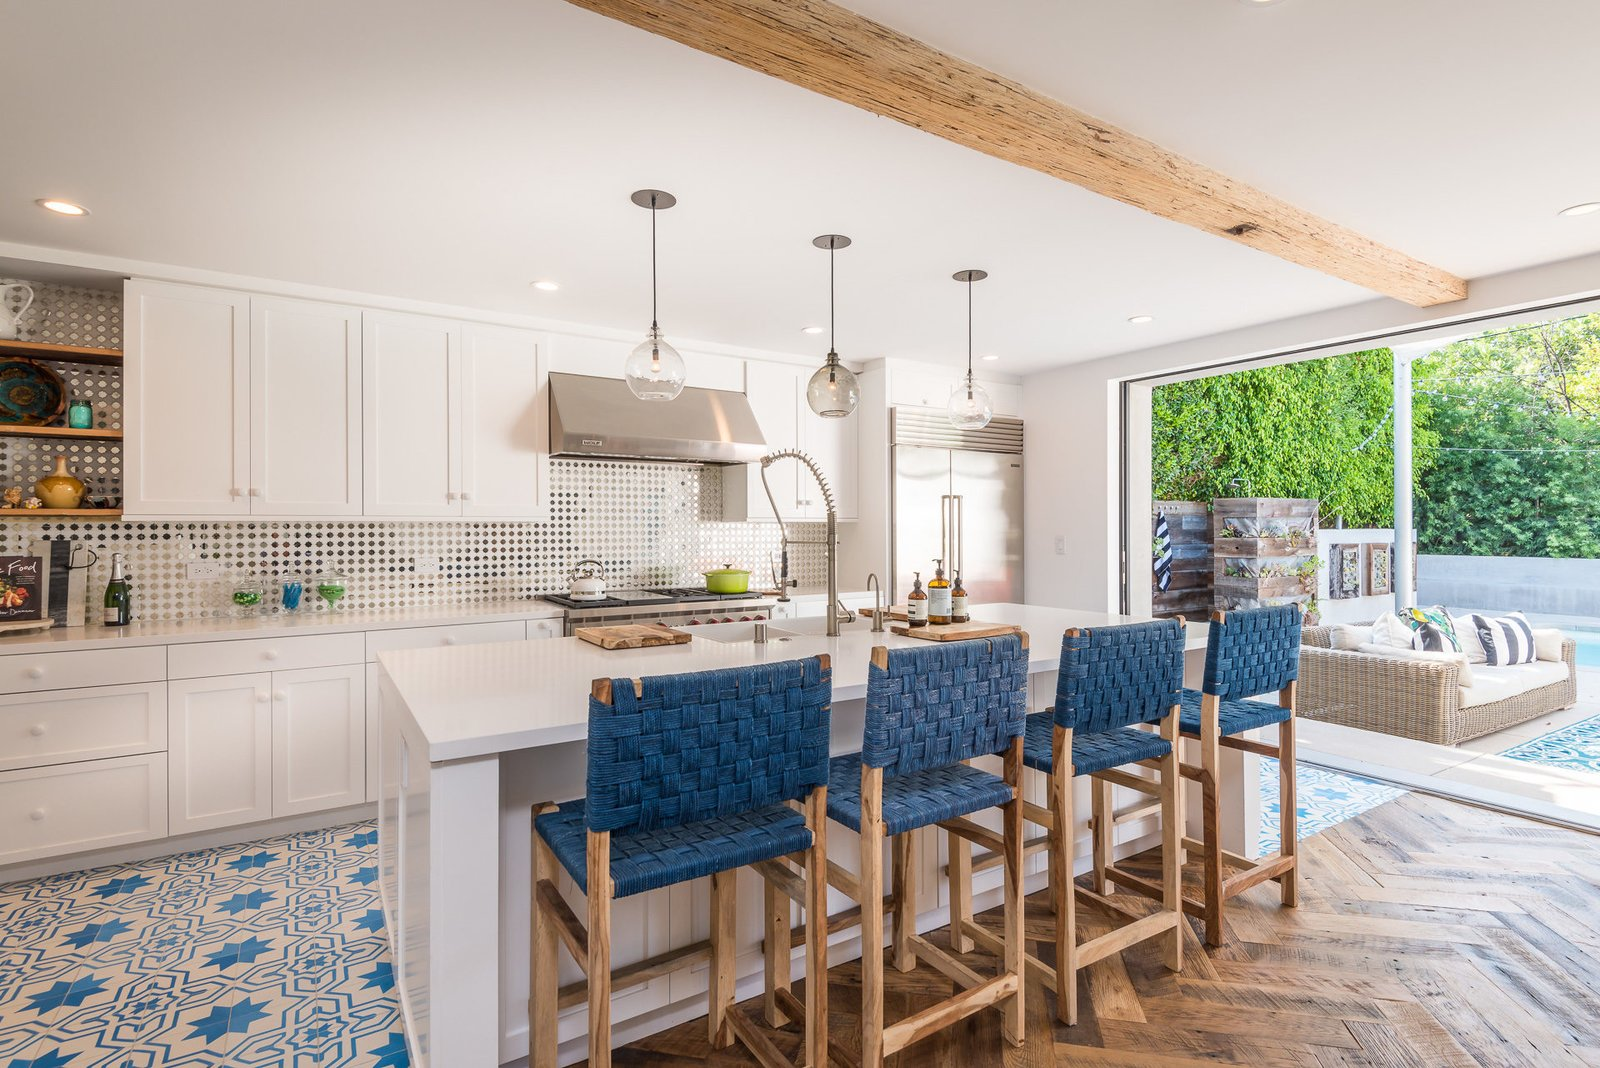 Tagged: Kitchen, White Cabinet, and Pendant Lighting.  Mid-Century Meets Boho Chic